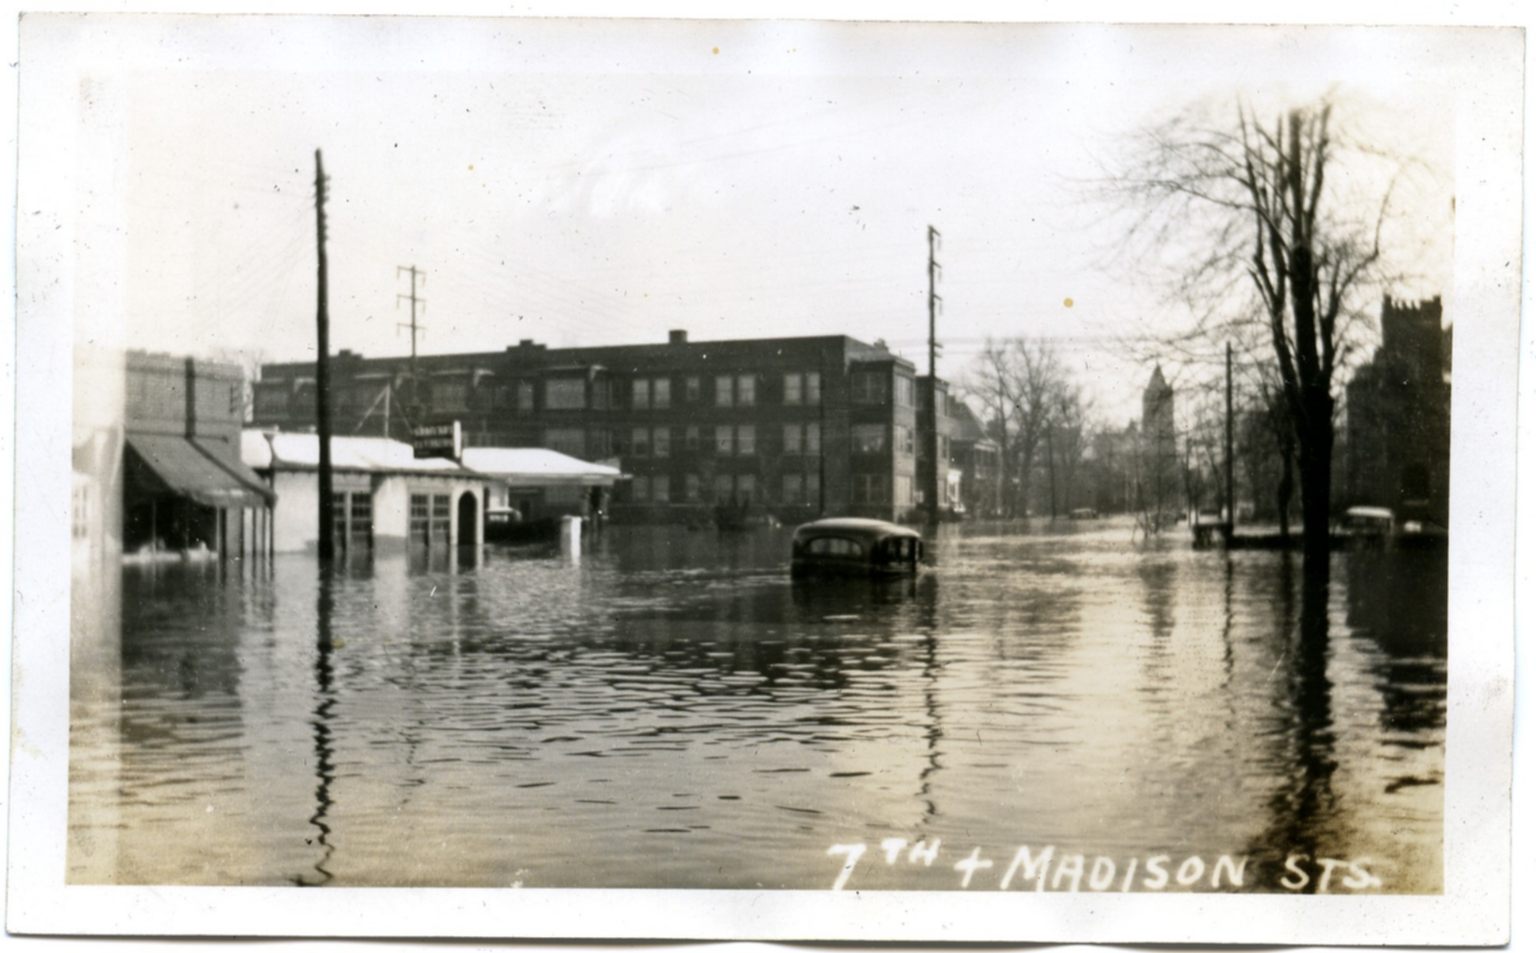 Intersection in Lowertown during '37 flood.